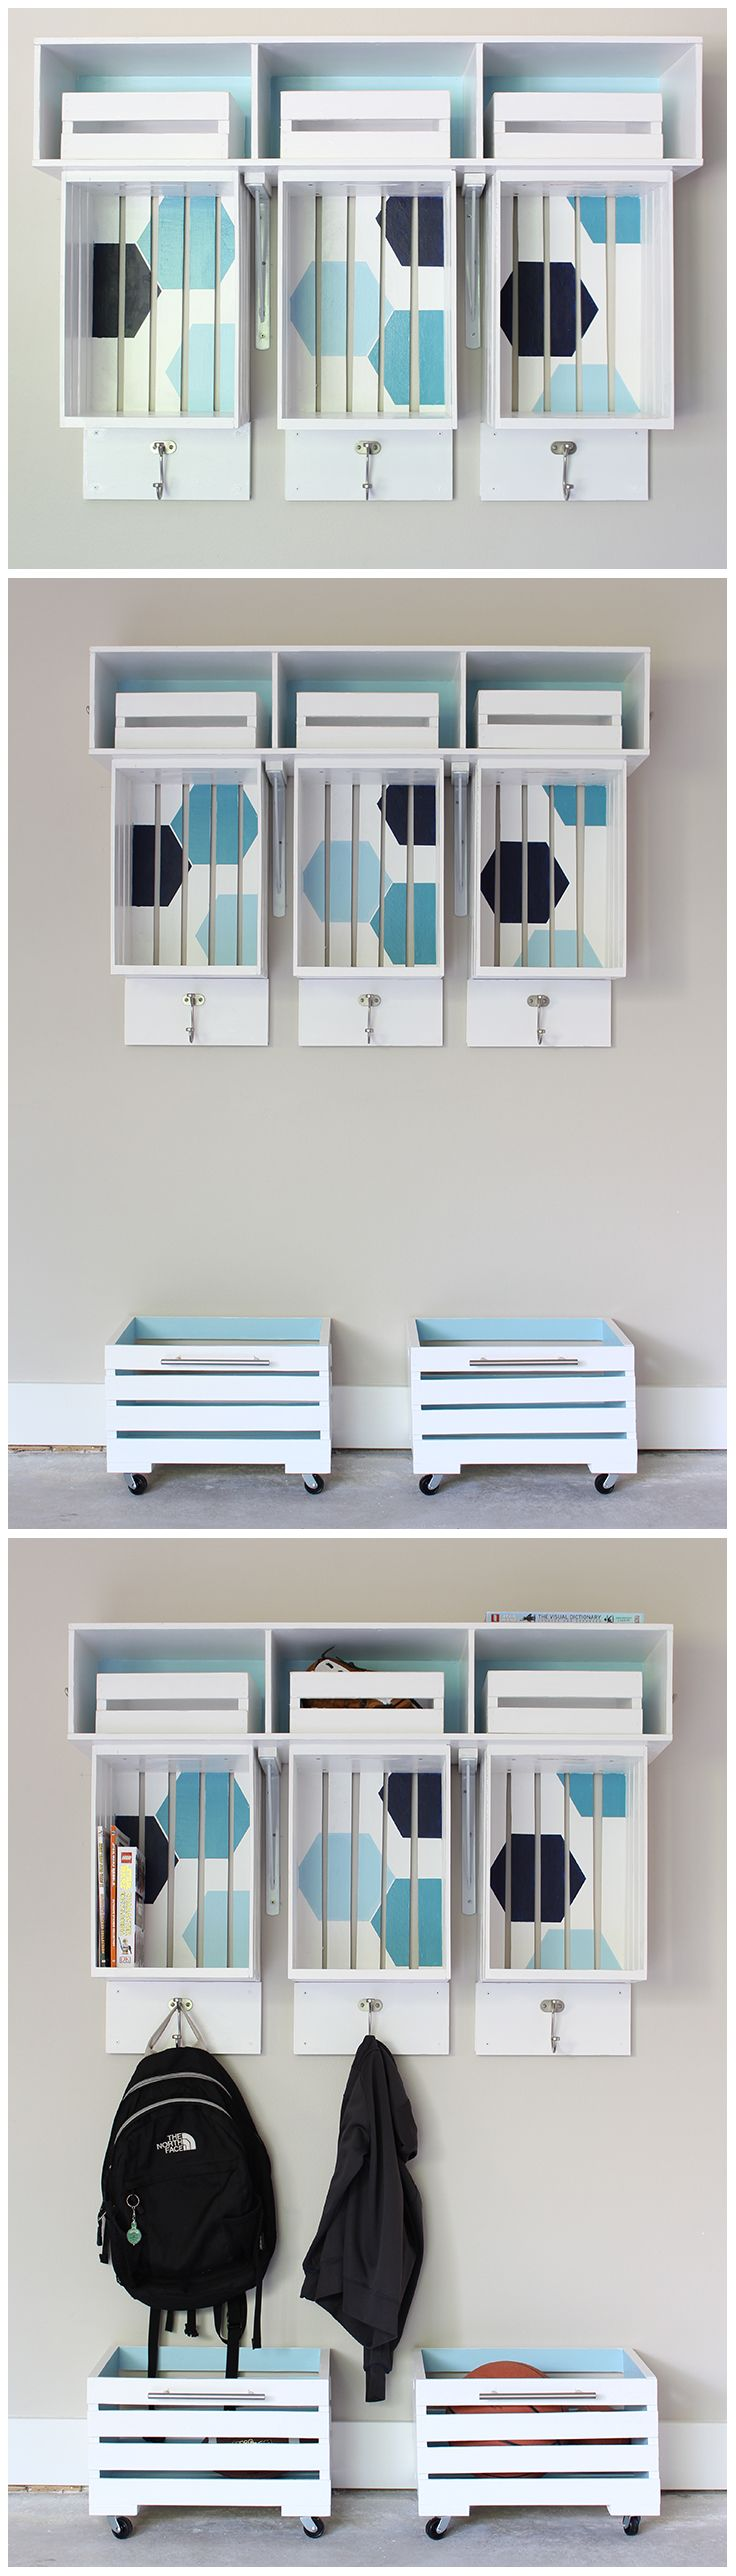 Old school wooden storage crates are a great way to help organize a space with a bit of visual appeal. Paint them, stain them, or just leave the crates in their natural state. We have wooden crates of all sizes for your next organization project.